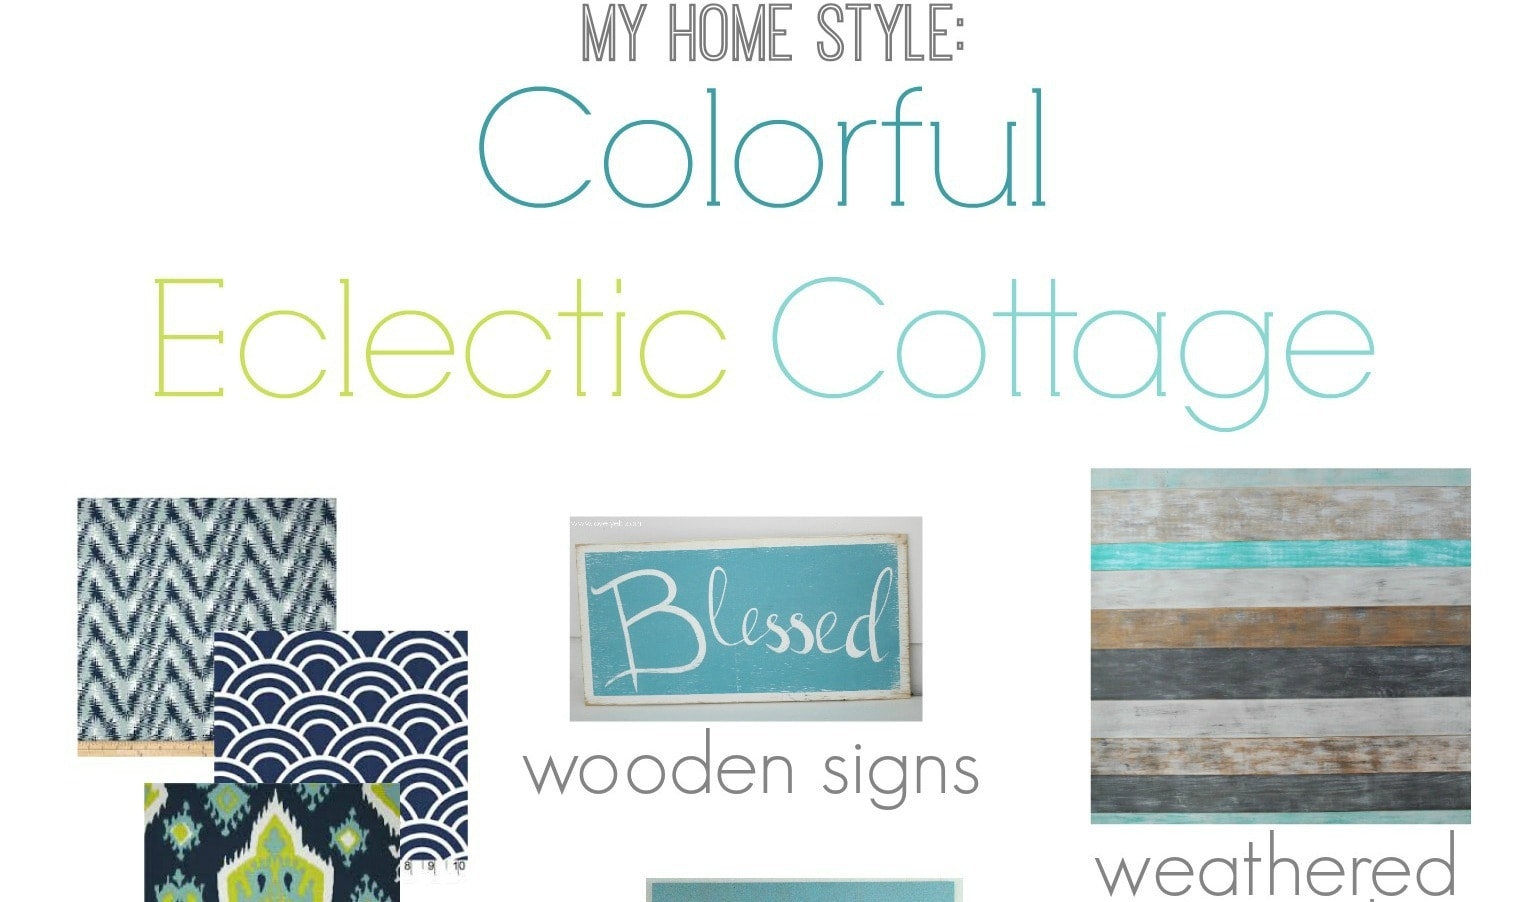 My Home Style: Colorful Eclectic Cottage